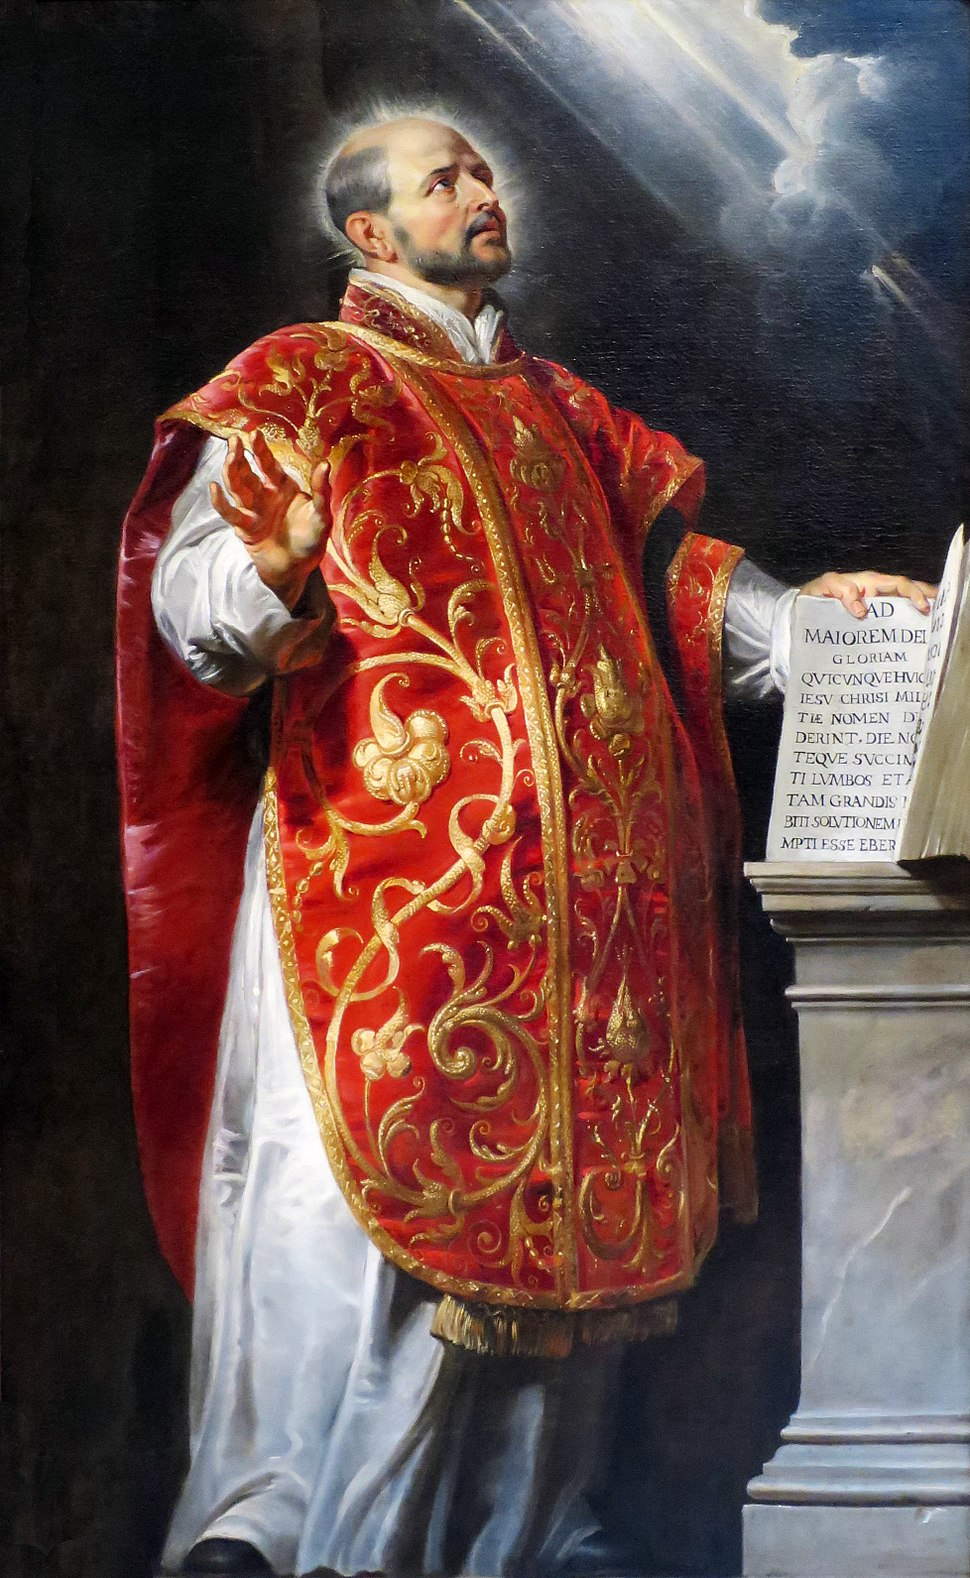 St Ignatius of Loyola (1491-1556) Founder of the Jesuits